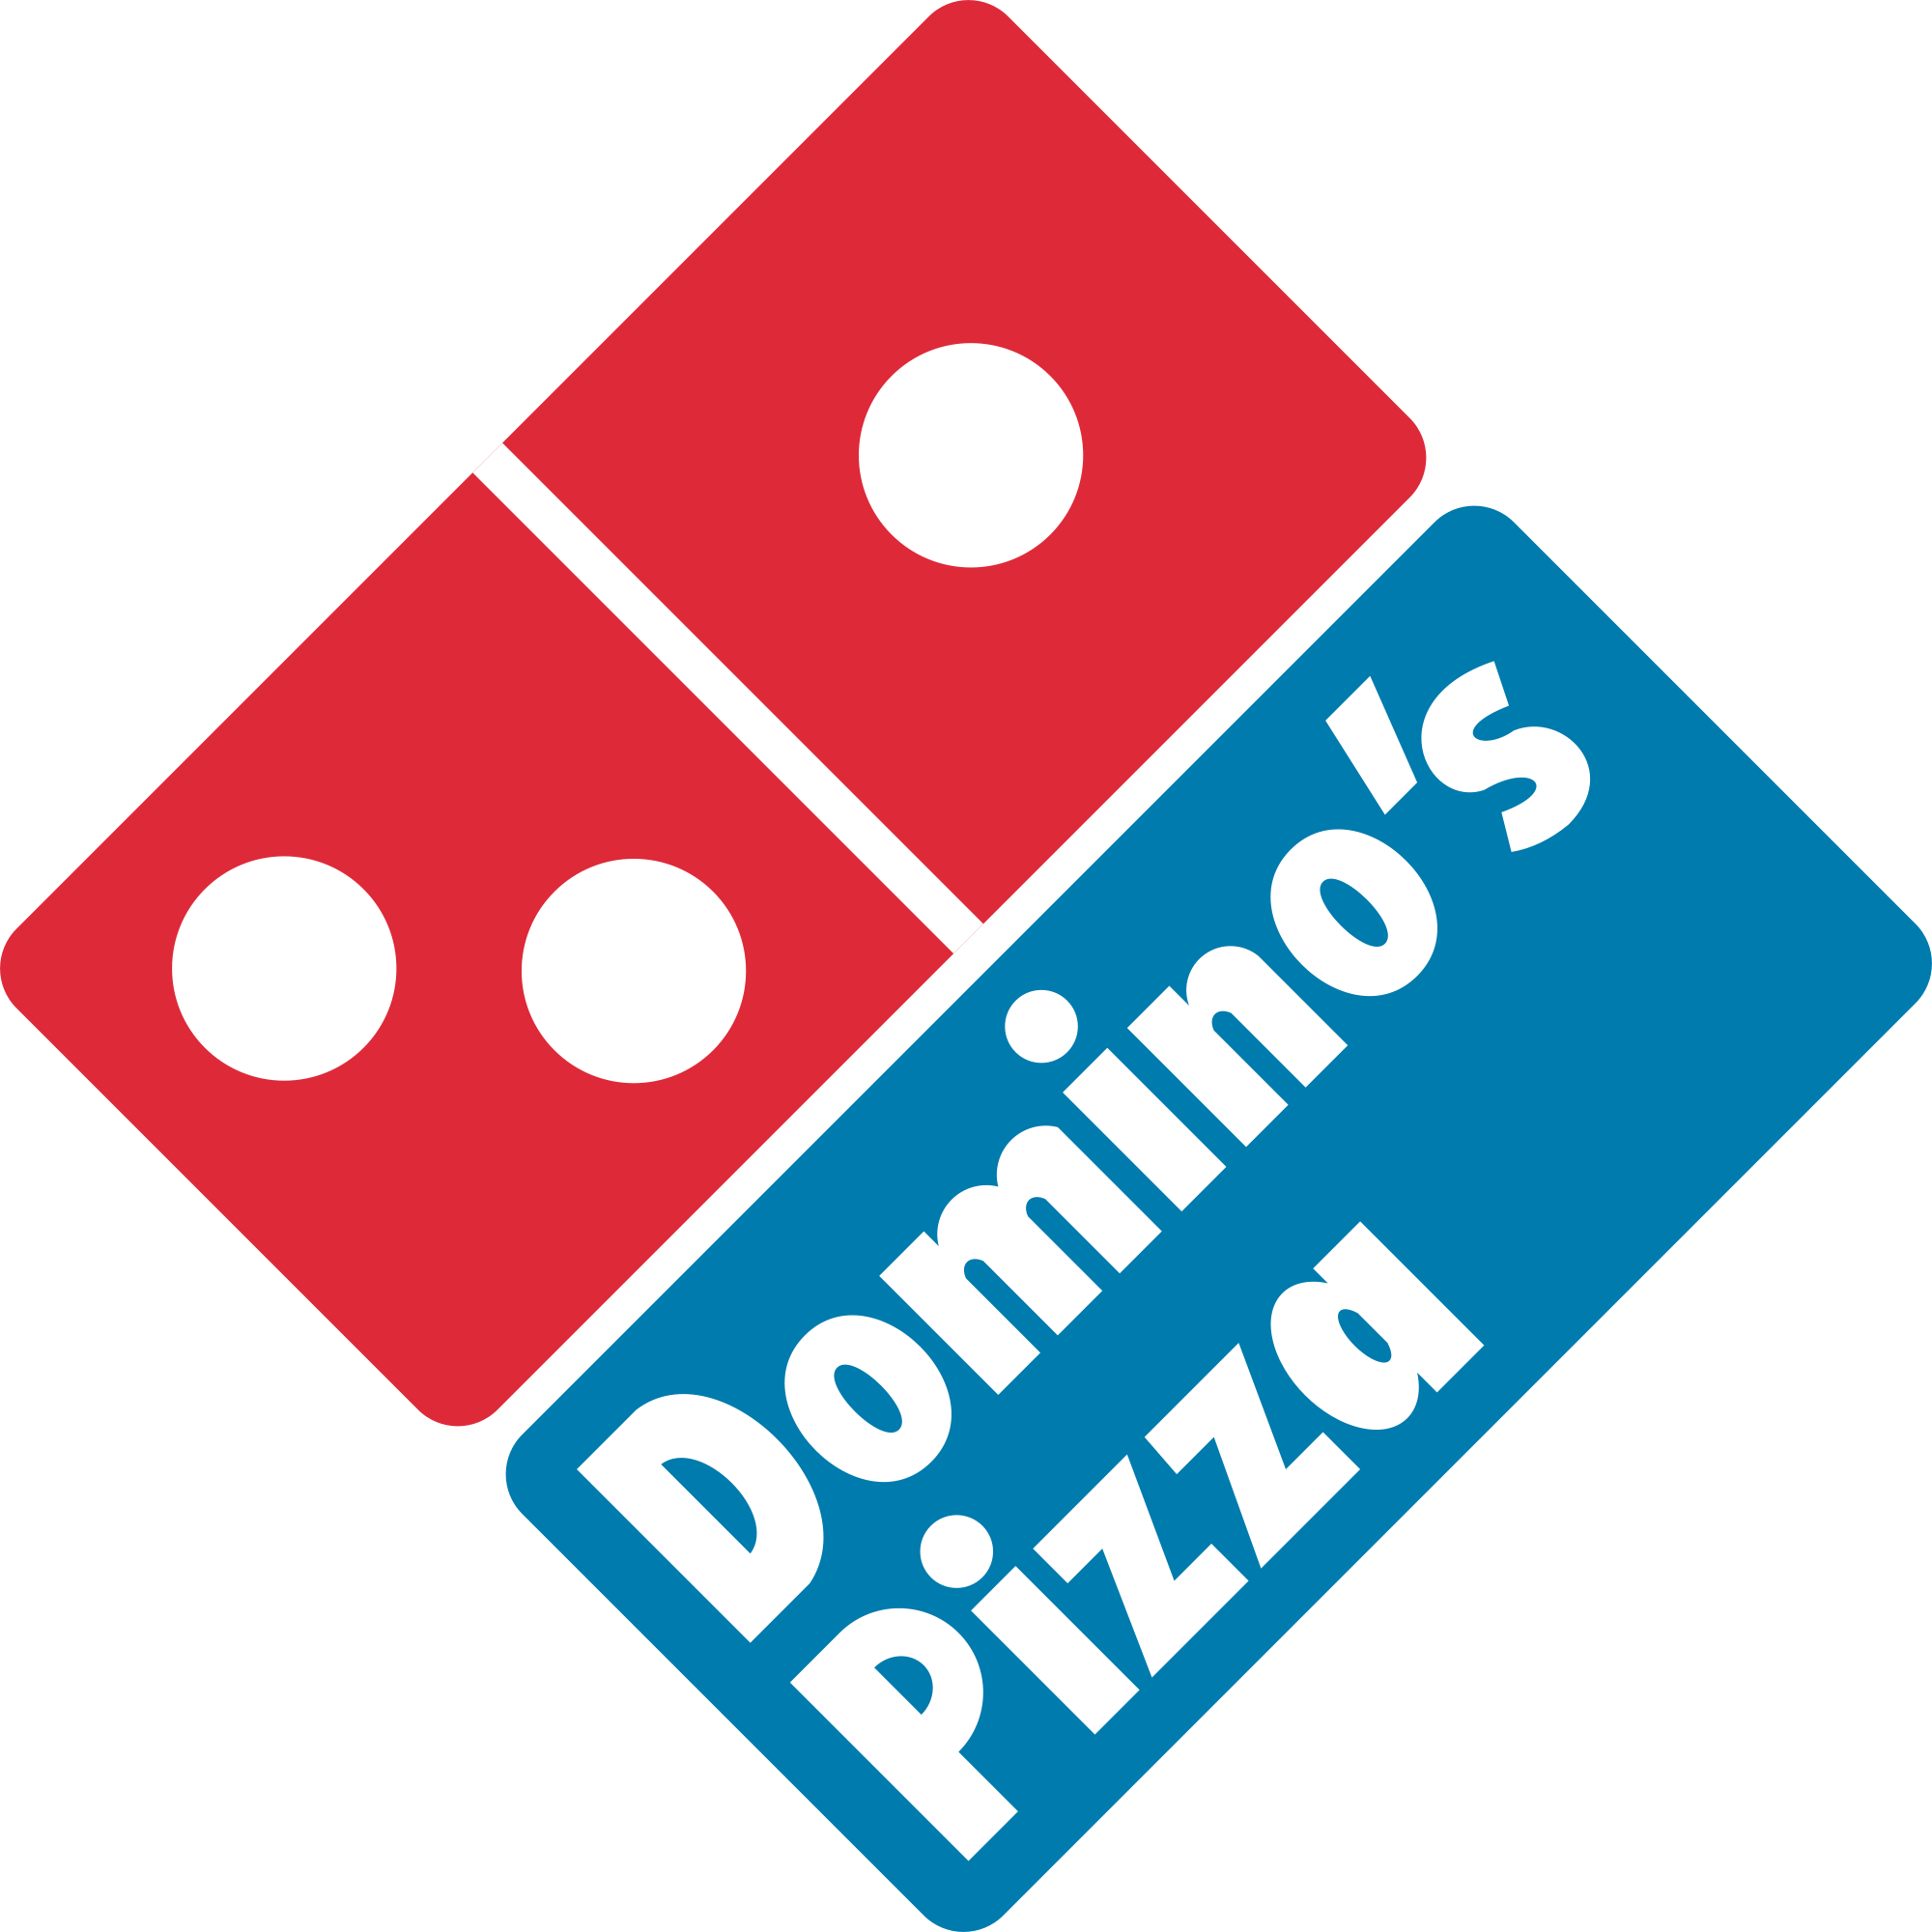 Domino's Pizza Franchise